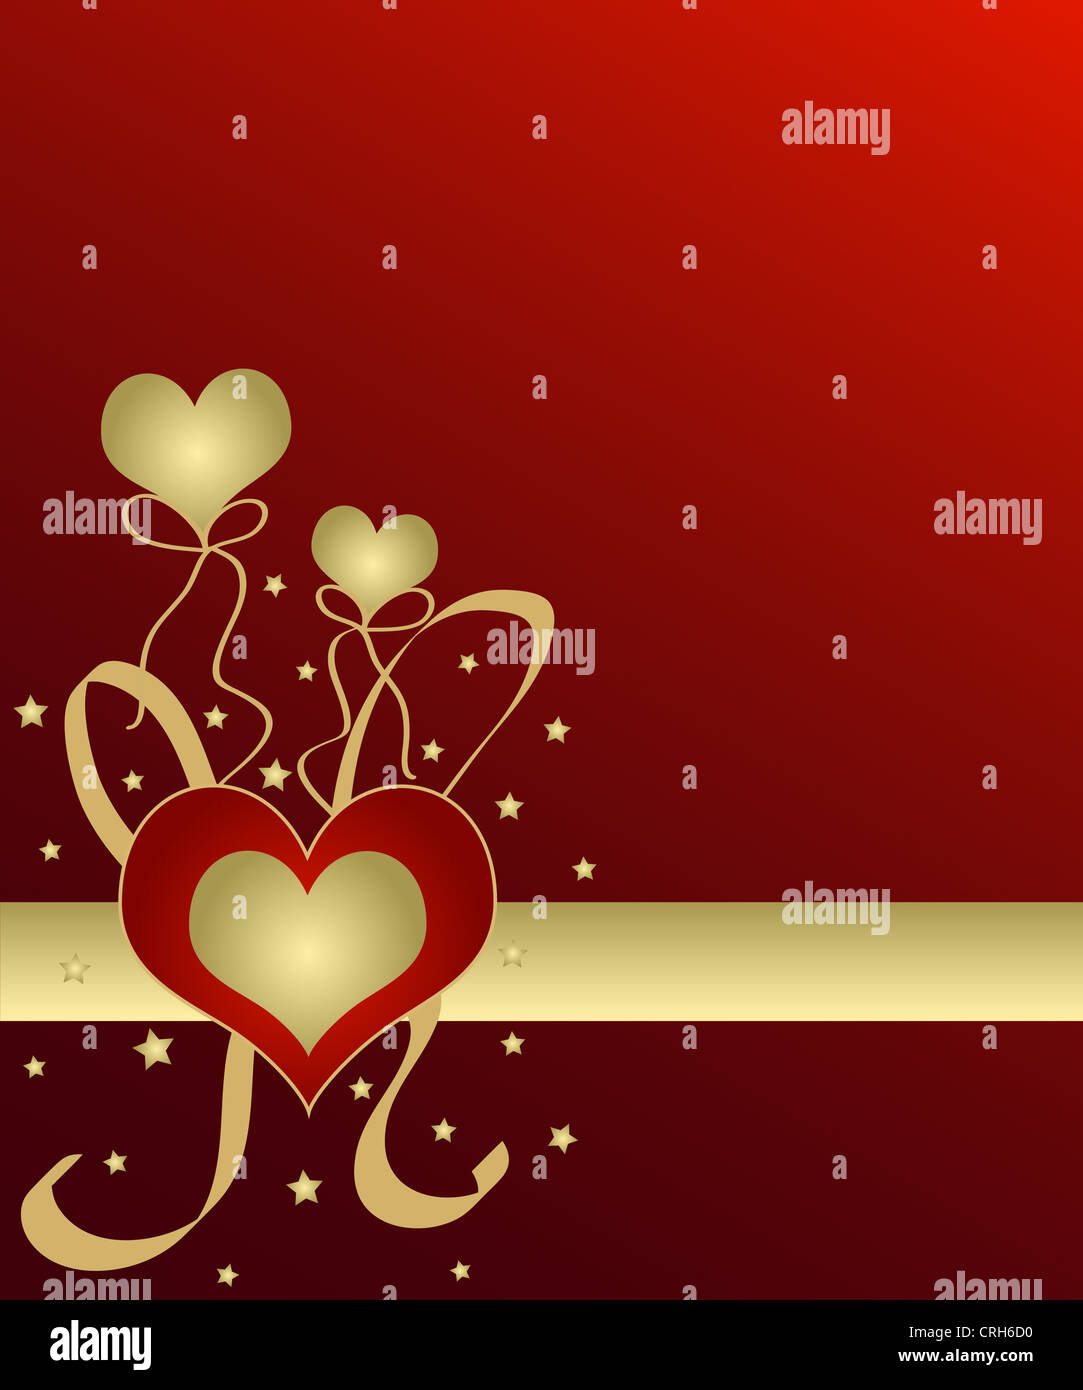 Heart and balloons in gold on red Stock Photo